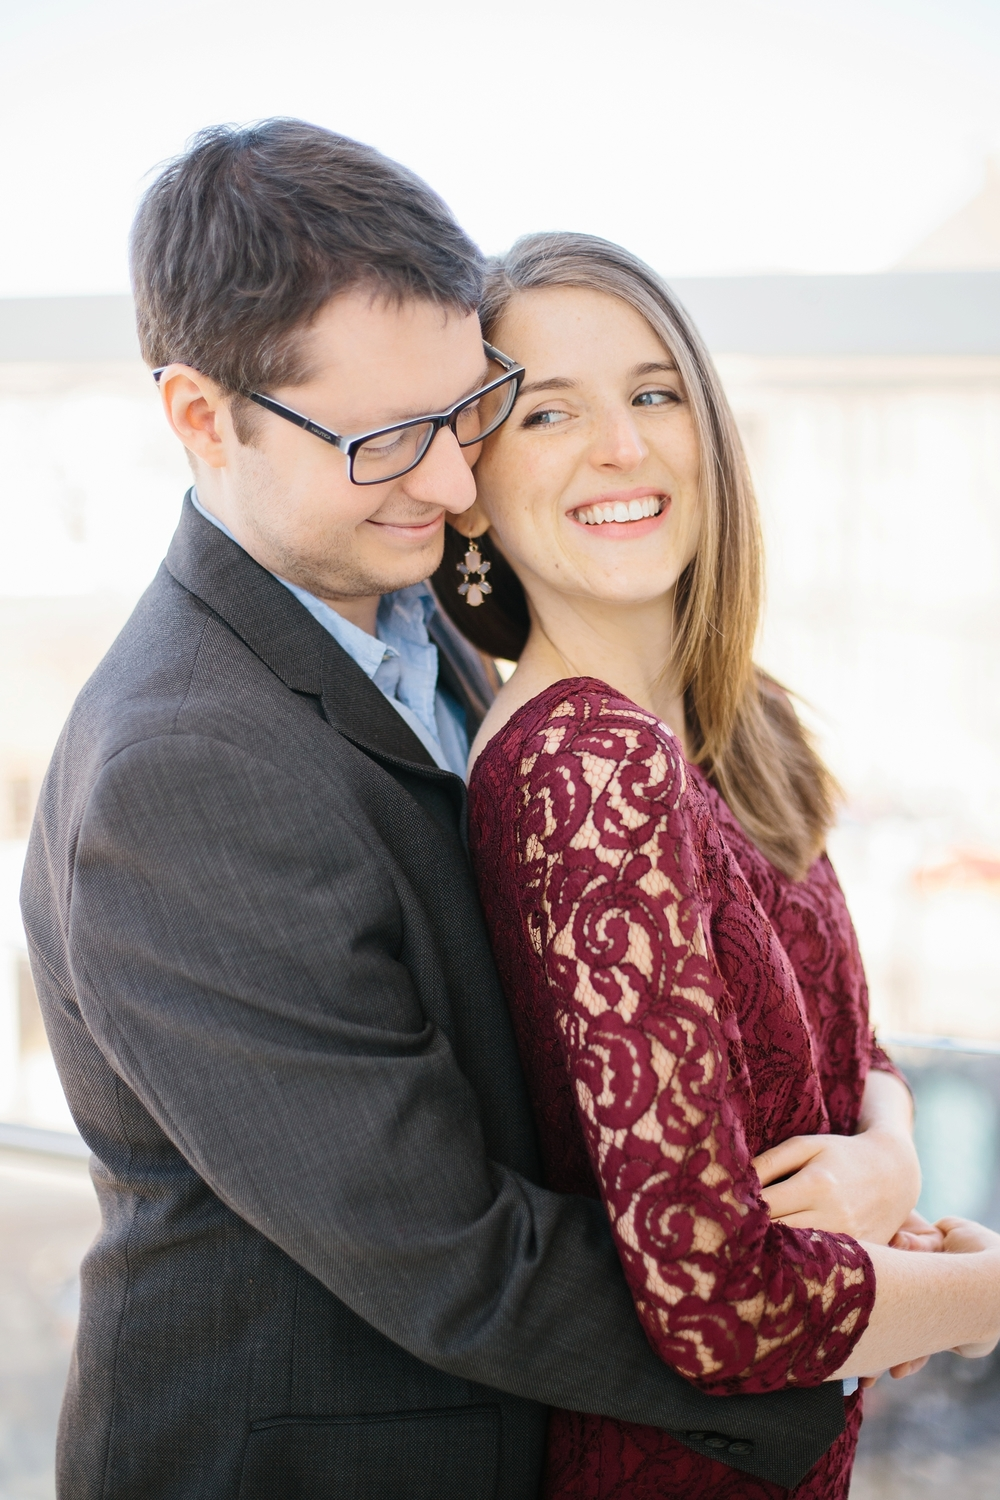 ClassicDowntownMadisonEngagementSession_0009.jpg